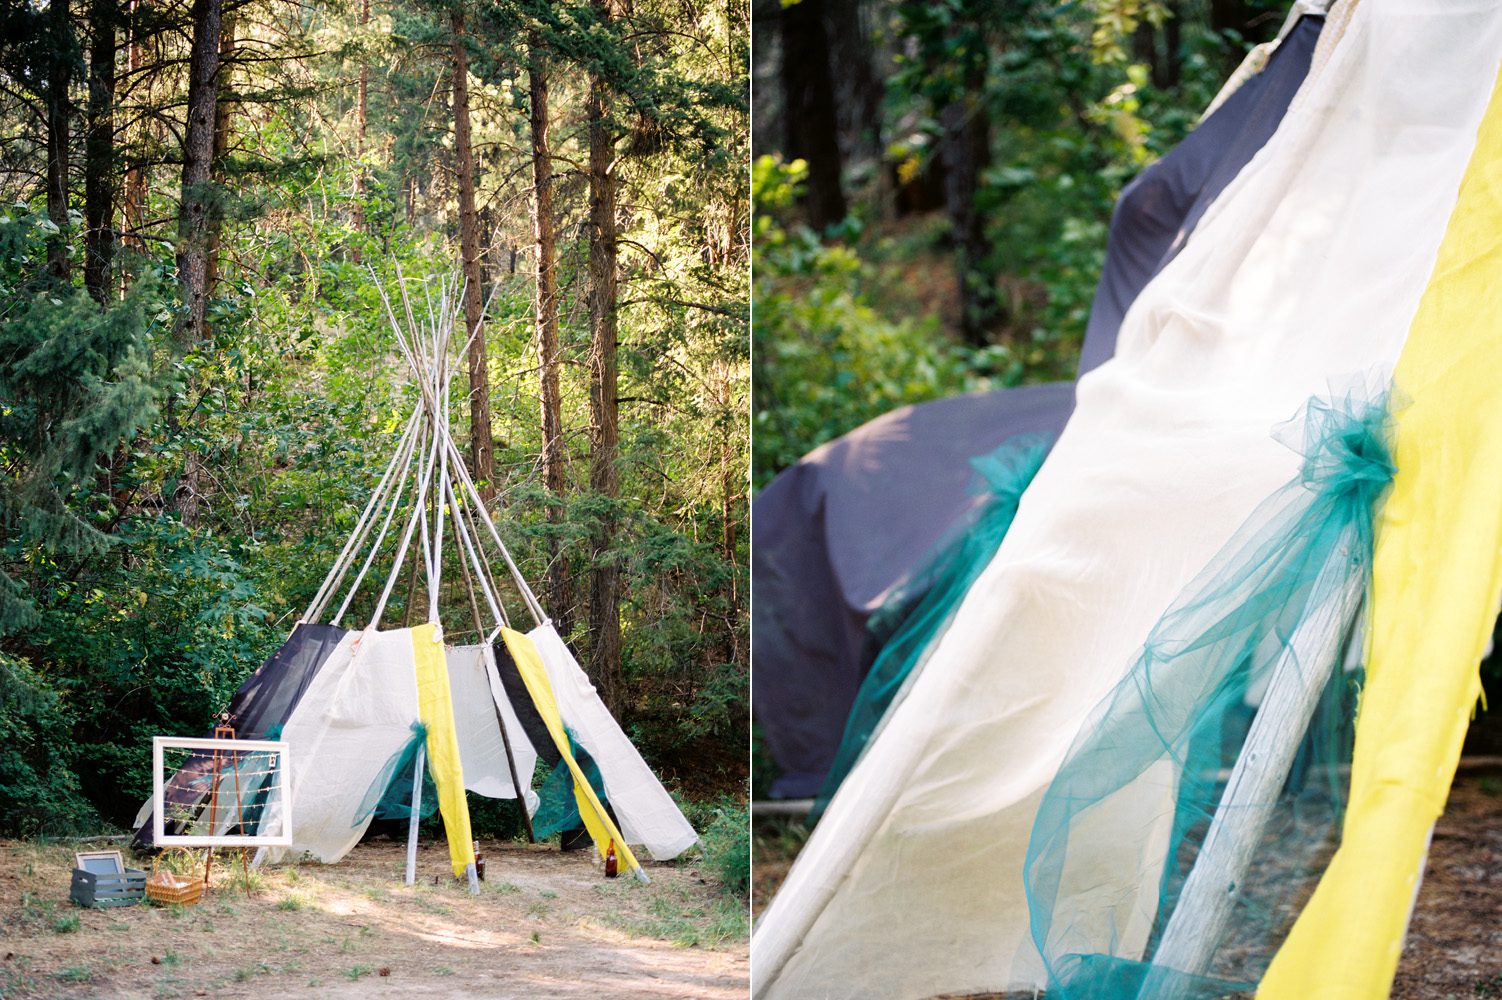 leavenworth campground wedding teepee decorations.jpg